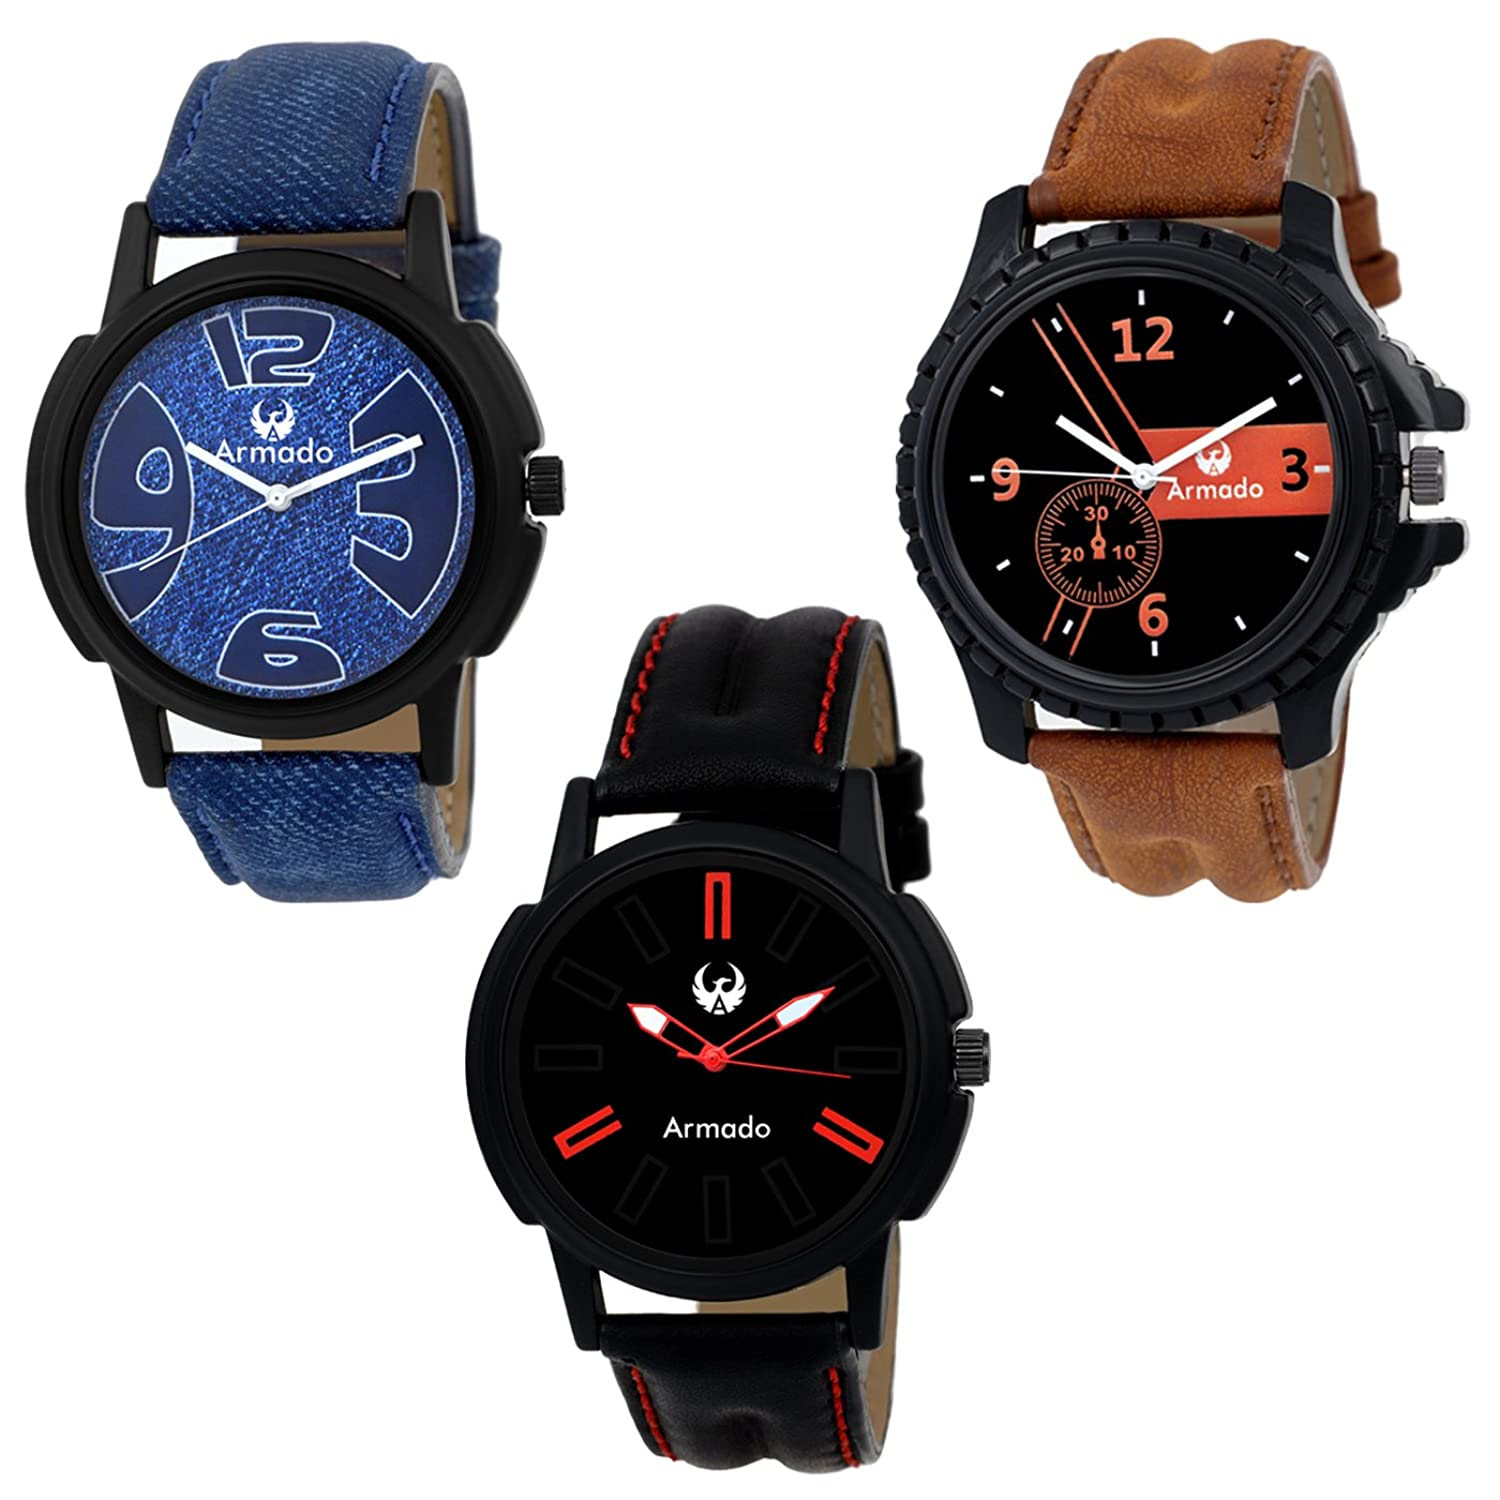 Deals on Combo Of 3 Elegant Analog Watches